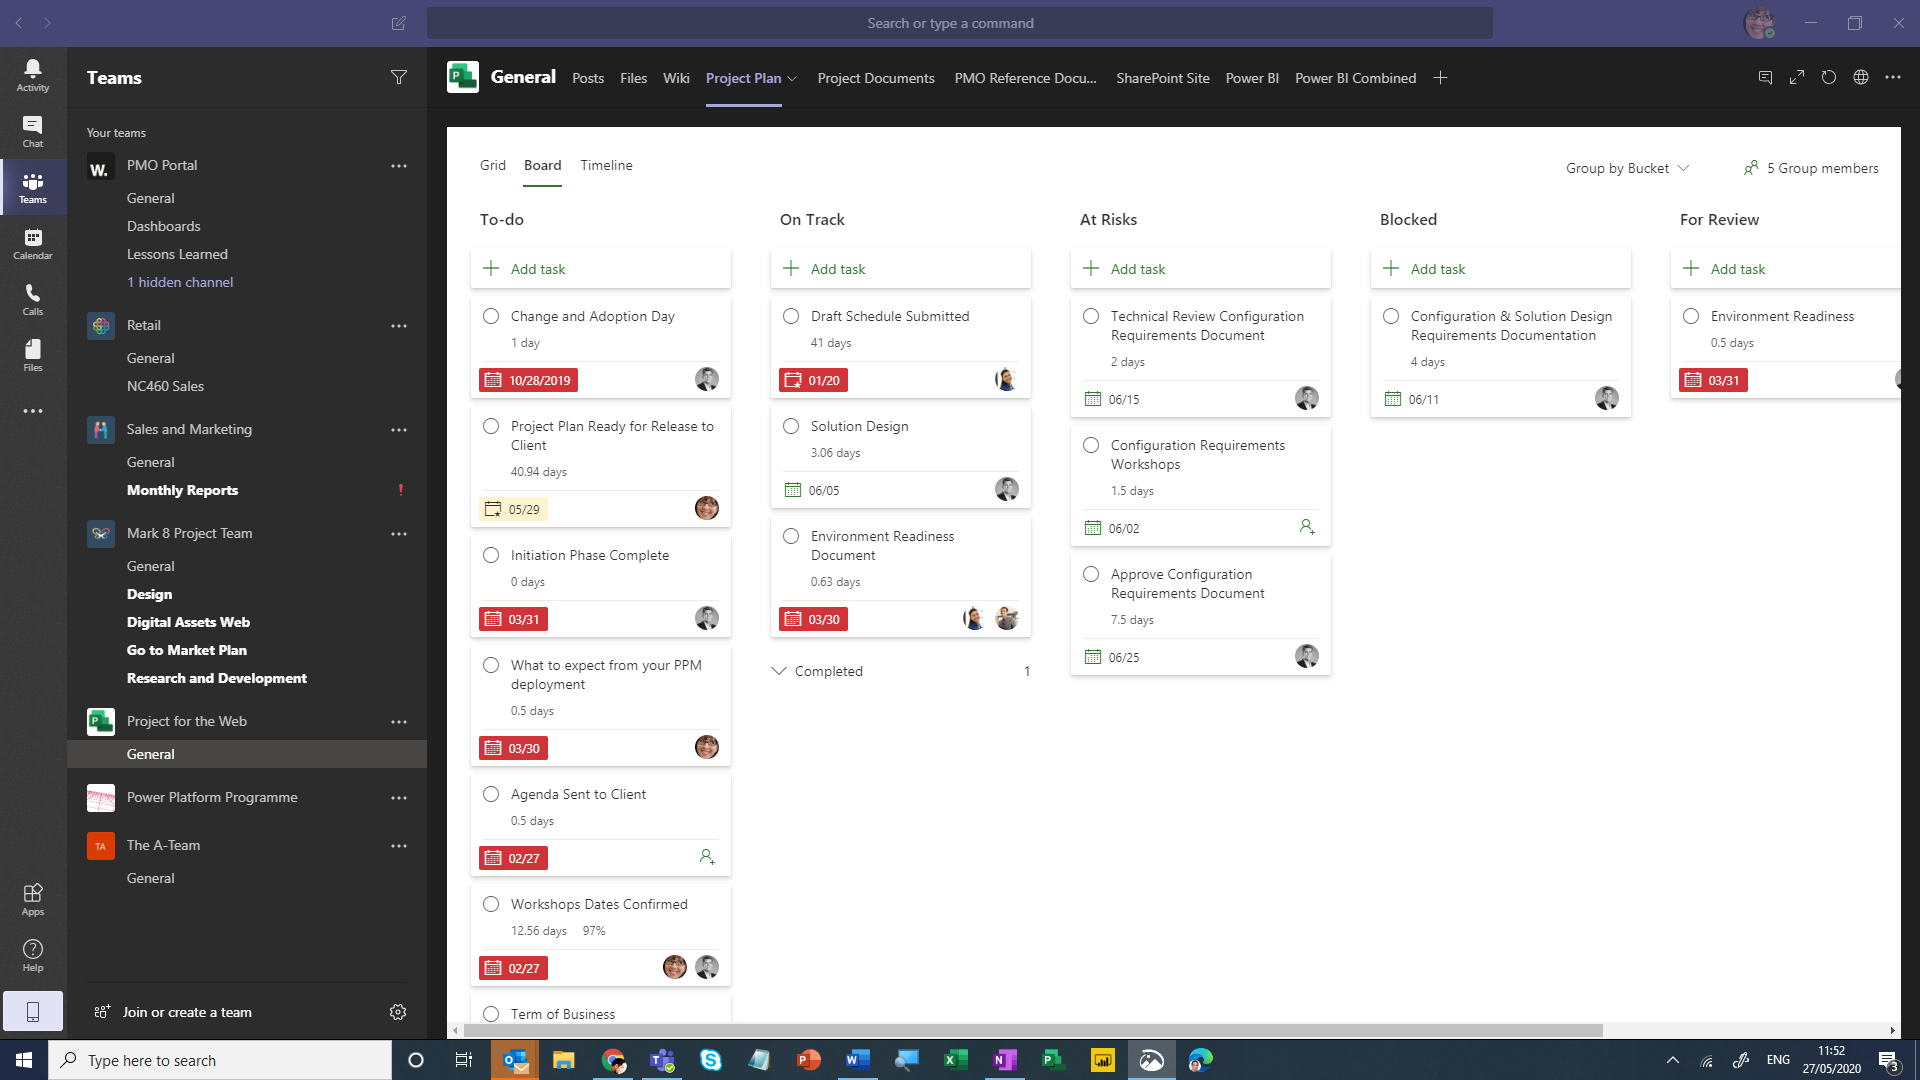 Screenshot of the overview of the team in Microsoft Teams